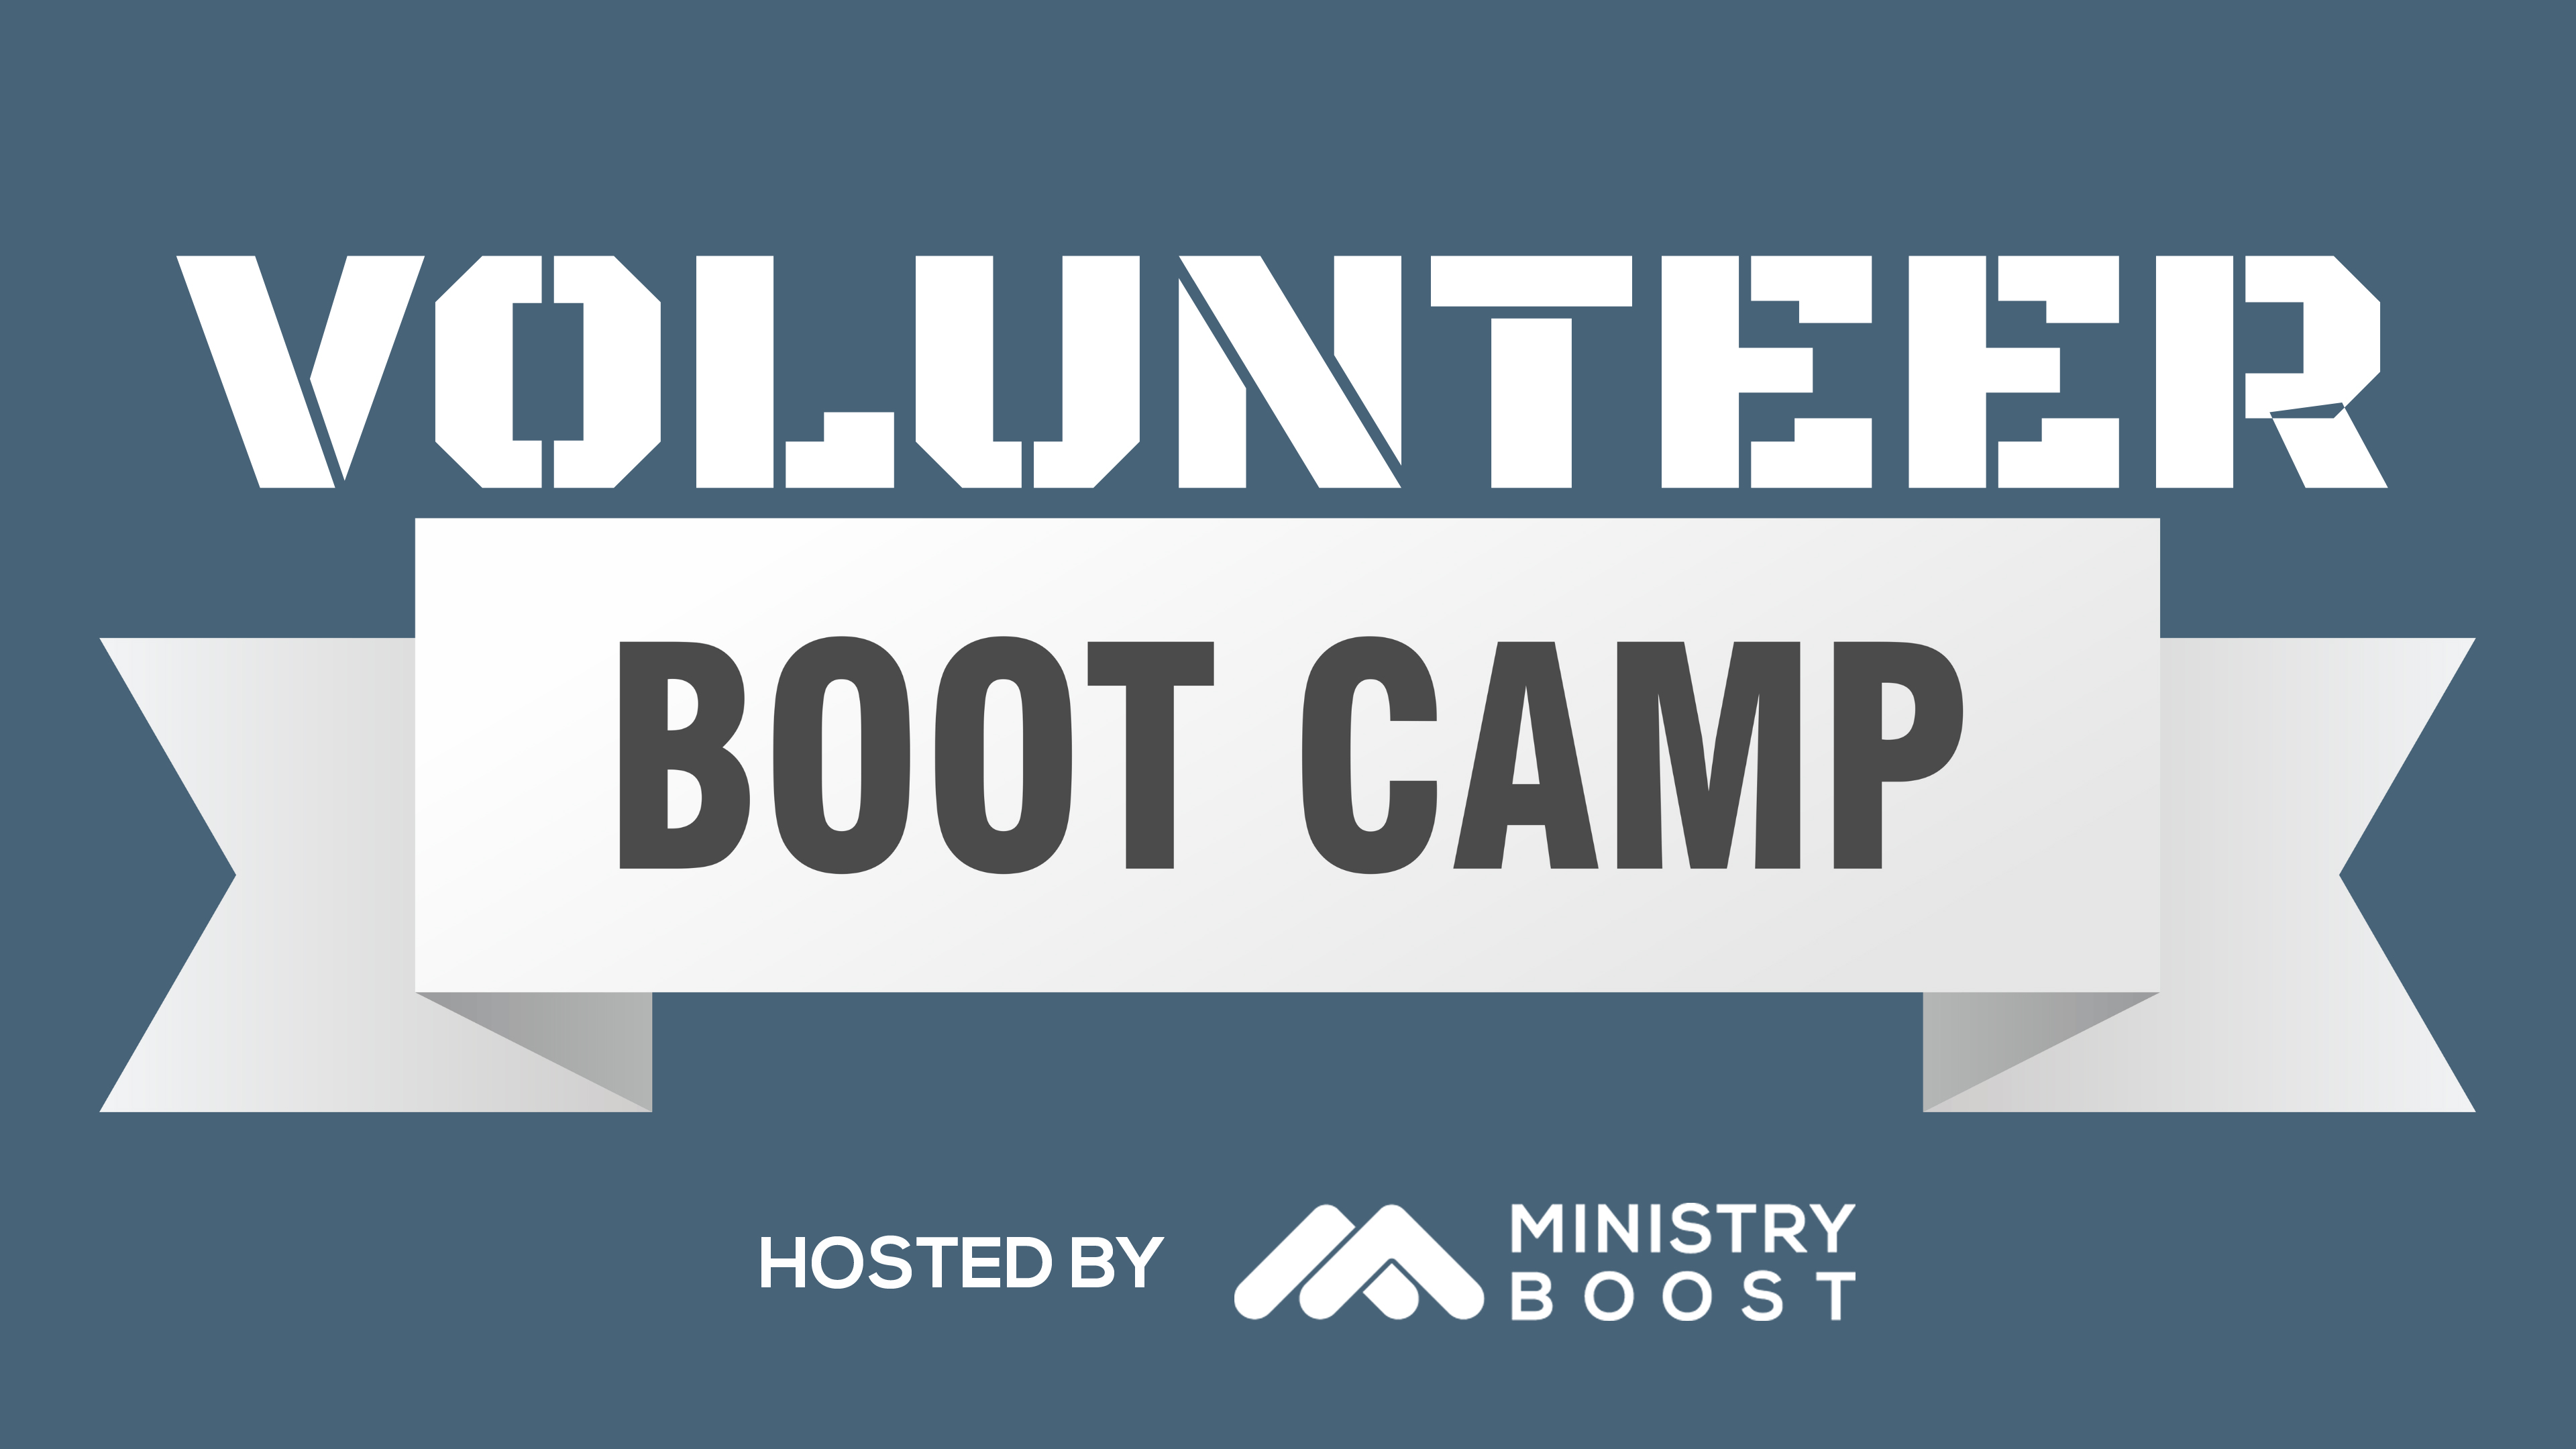 Volunteer Bootcamp Event